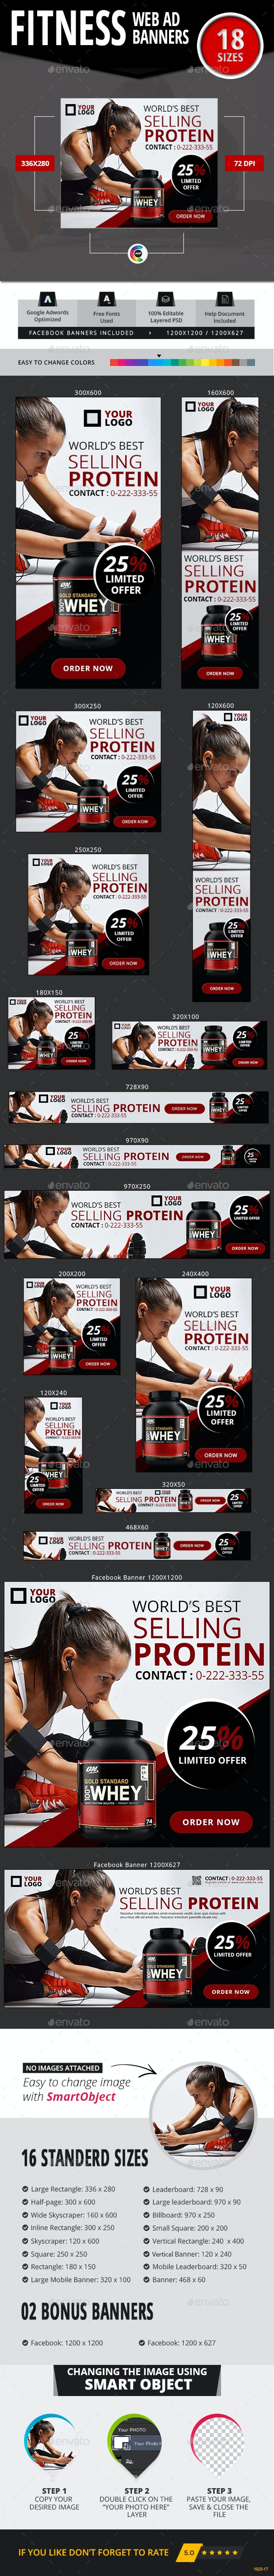 Banners for Fitness Product - Banners & Ads Web Elements